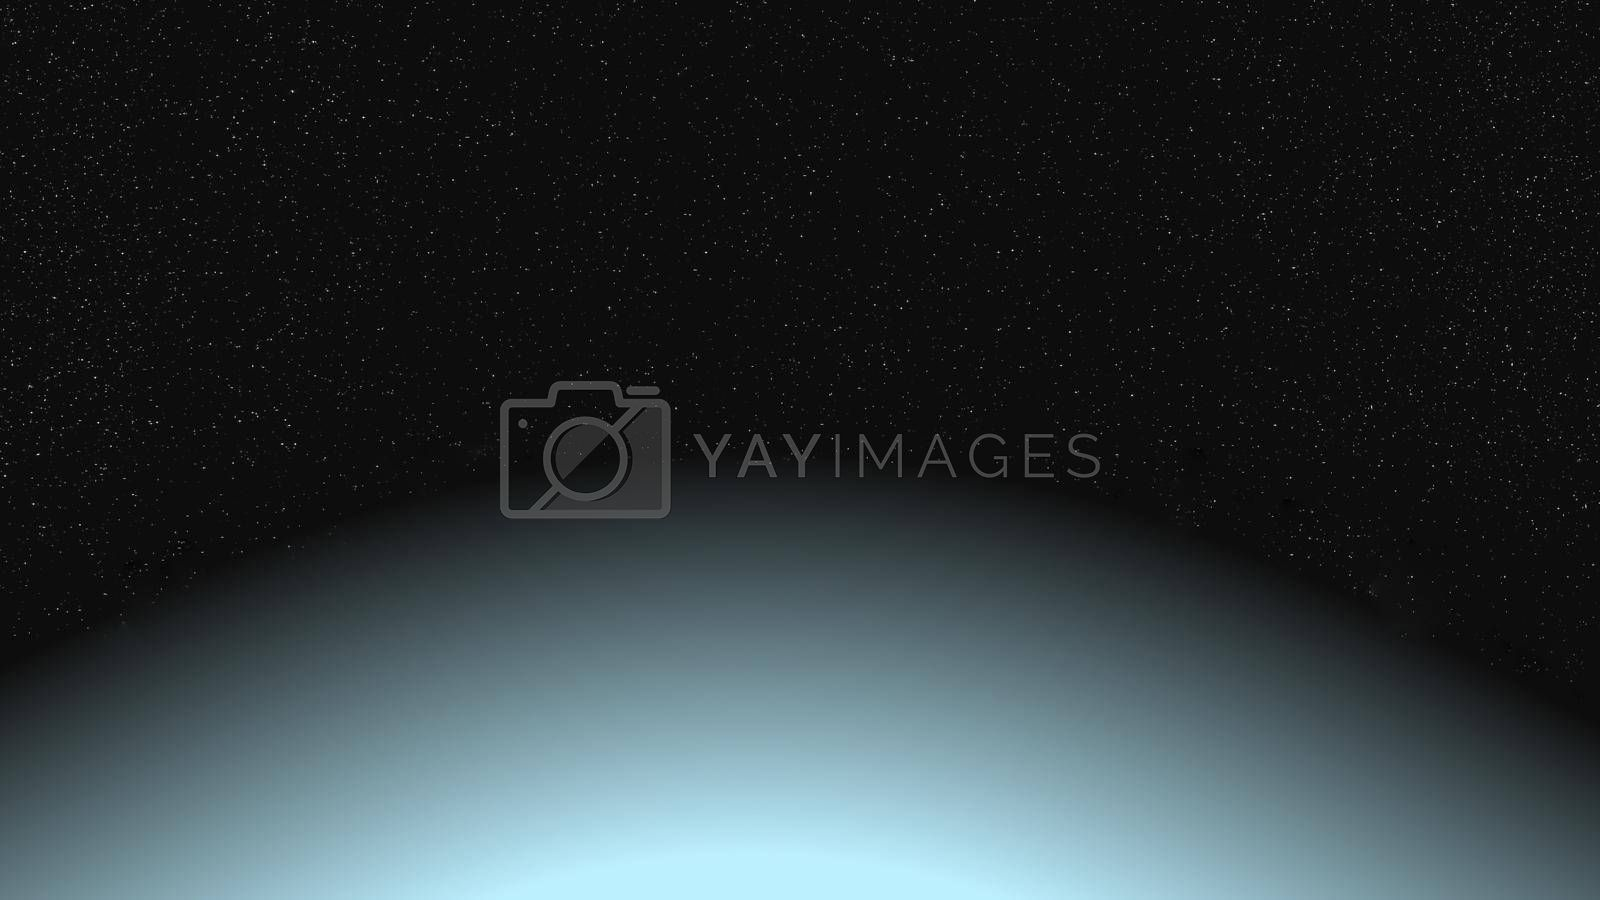 It depicts a digitally generated image of a planet and shining stars in the space